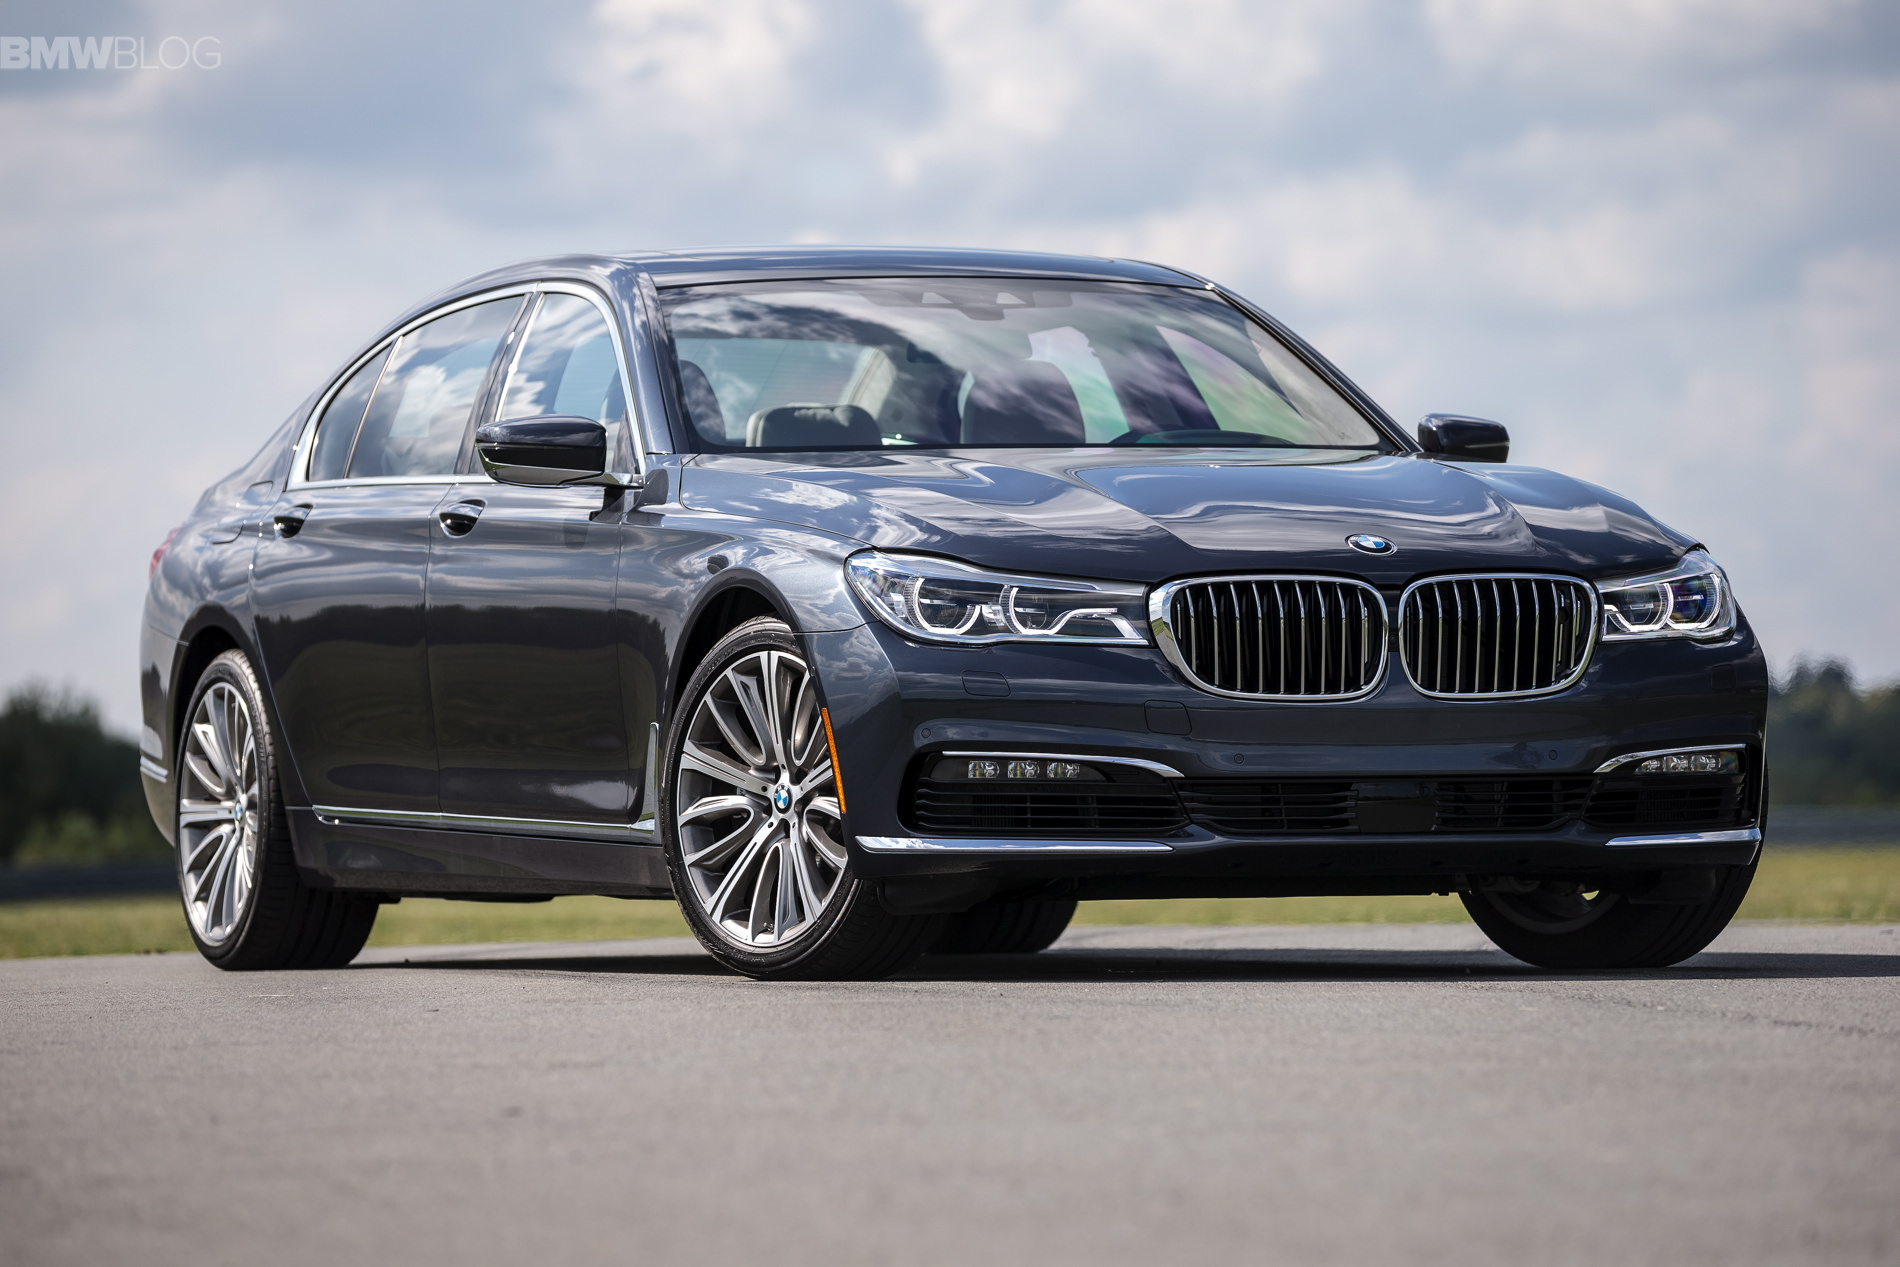 2016 bmw 7 series launch new york images 1900x 1200 39